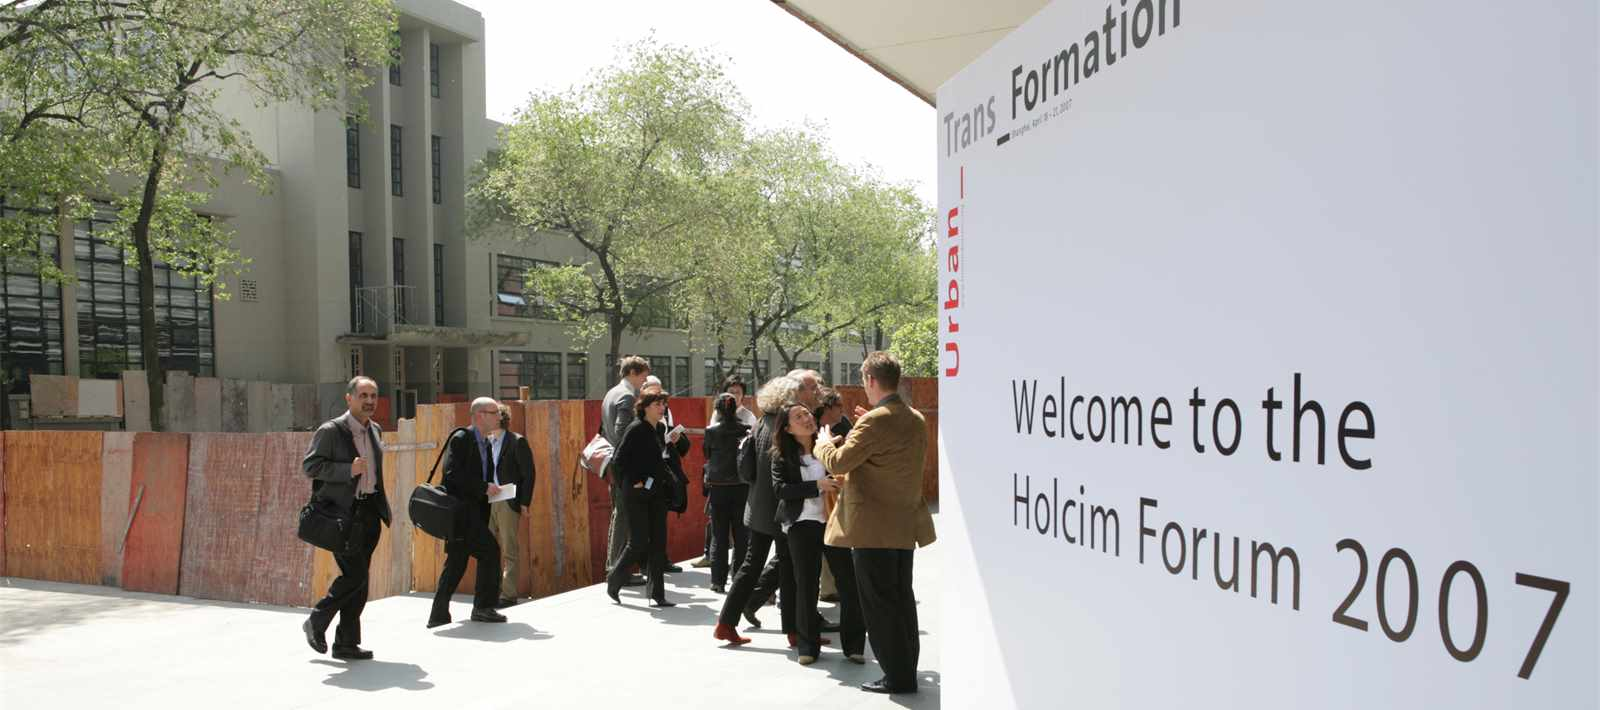 "Tongji University was host of the 2nd International Holcim Forum ""Urban_Trans_Formation"" in 2007."